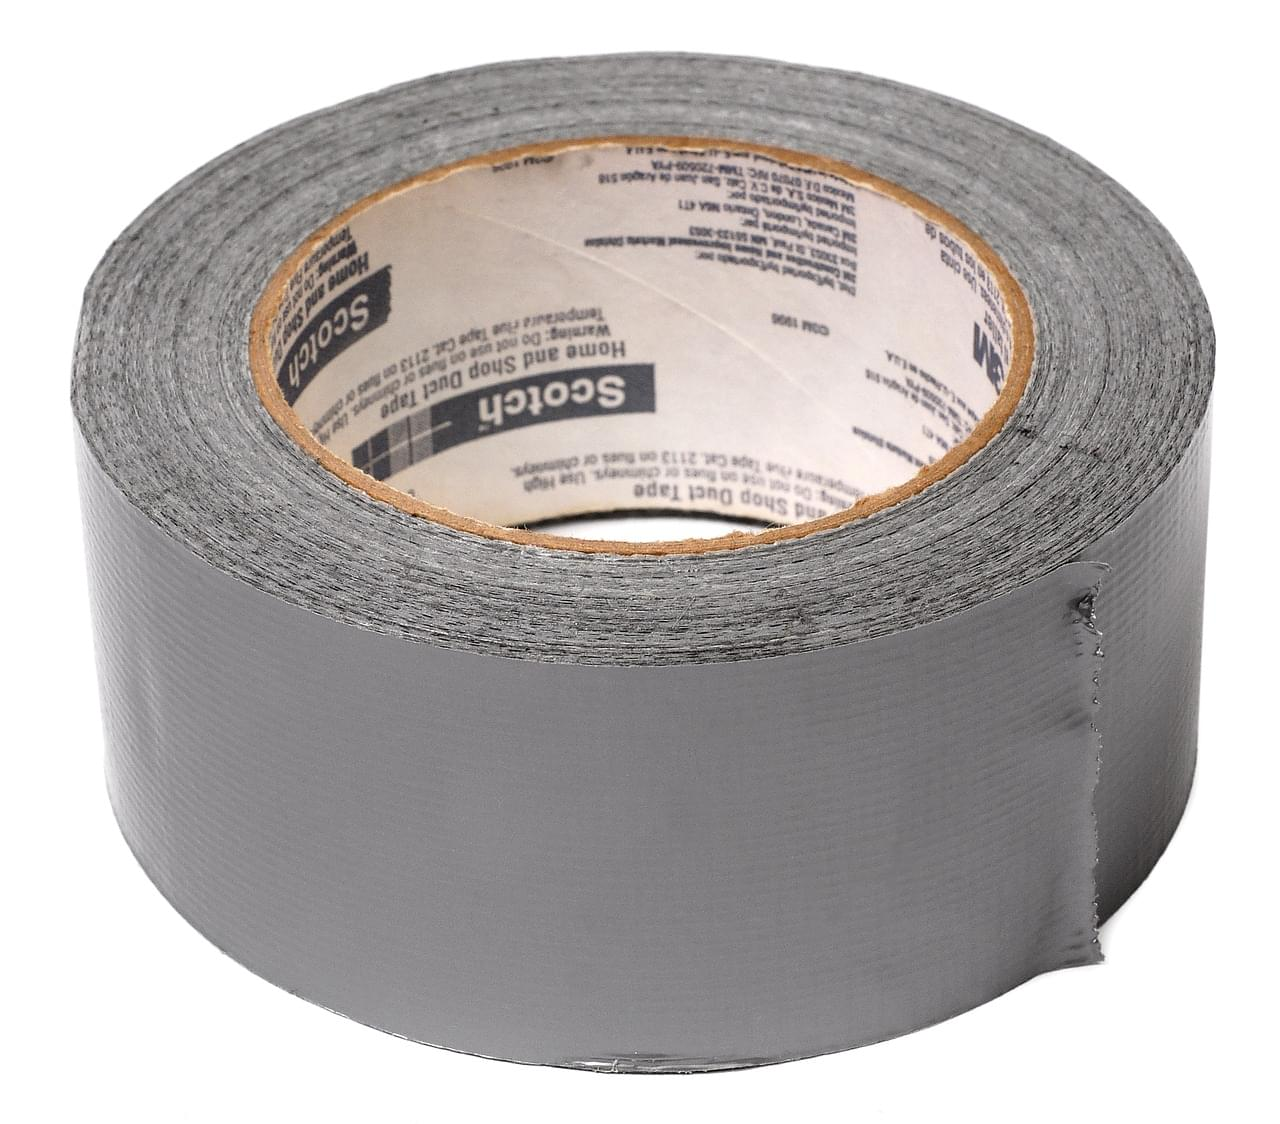 duct-tape-2202209_1280